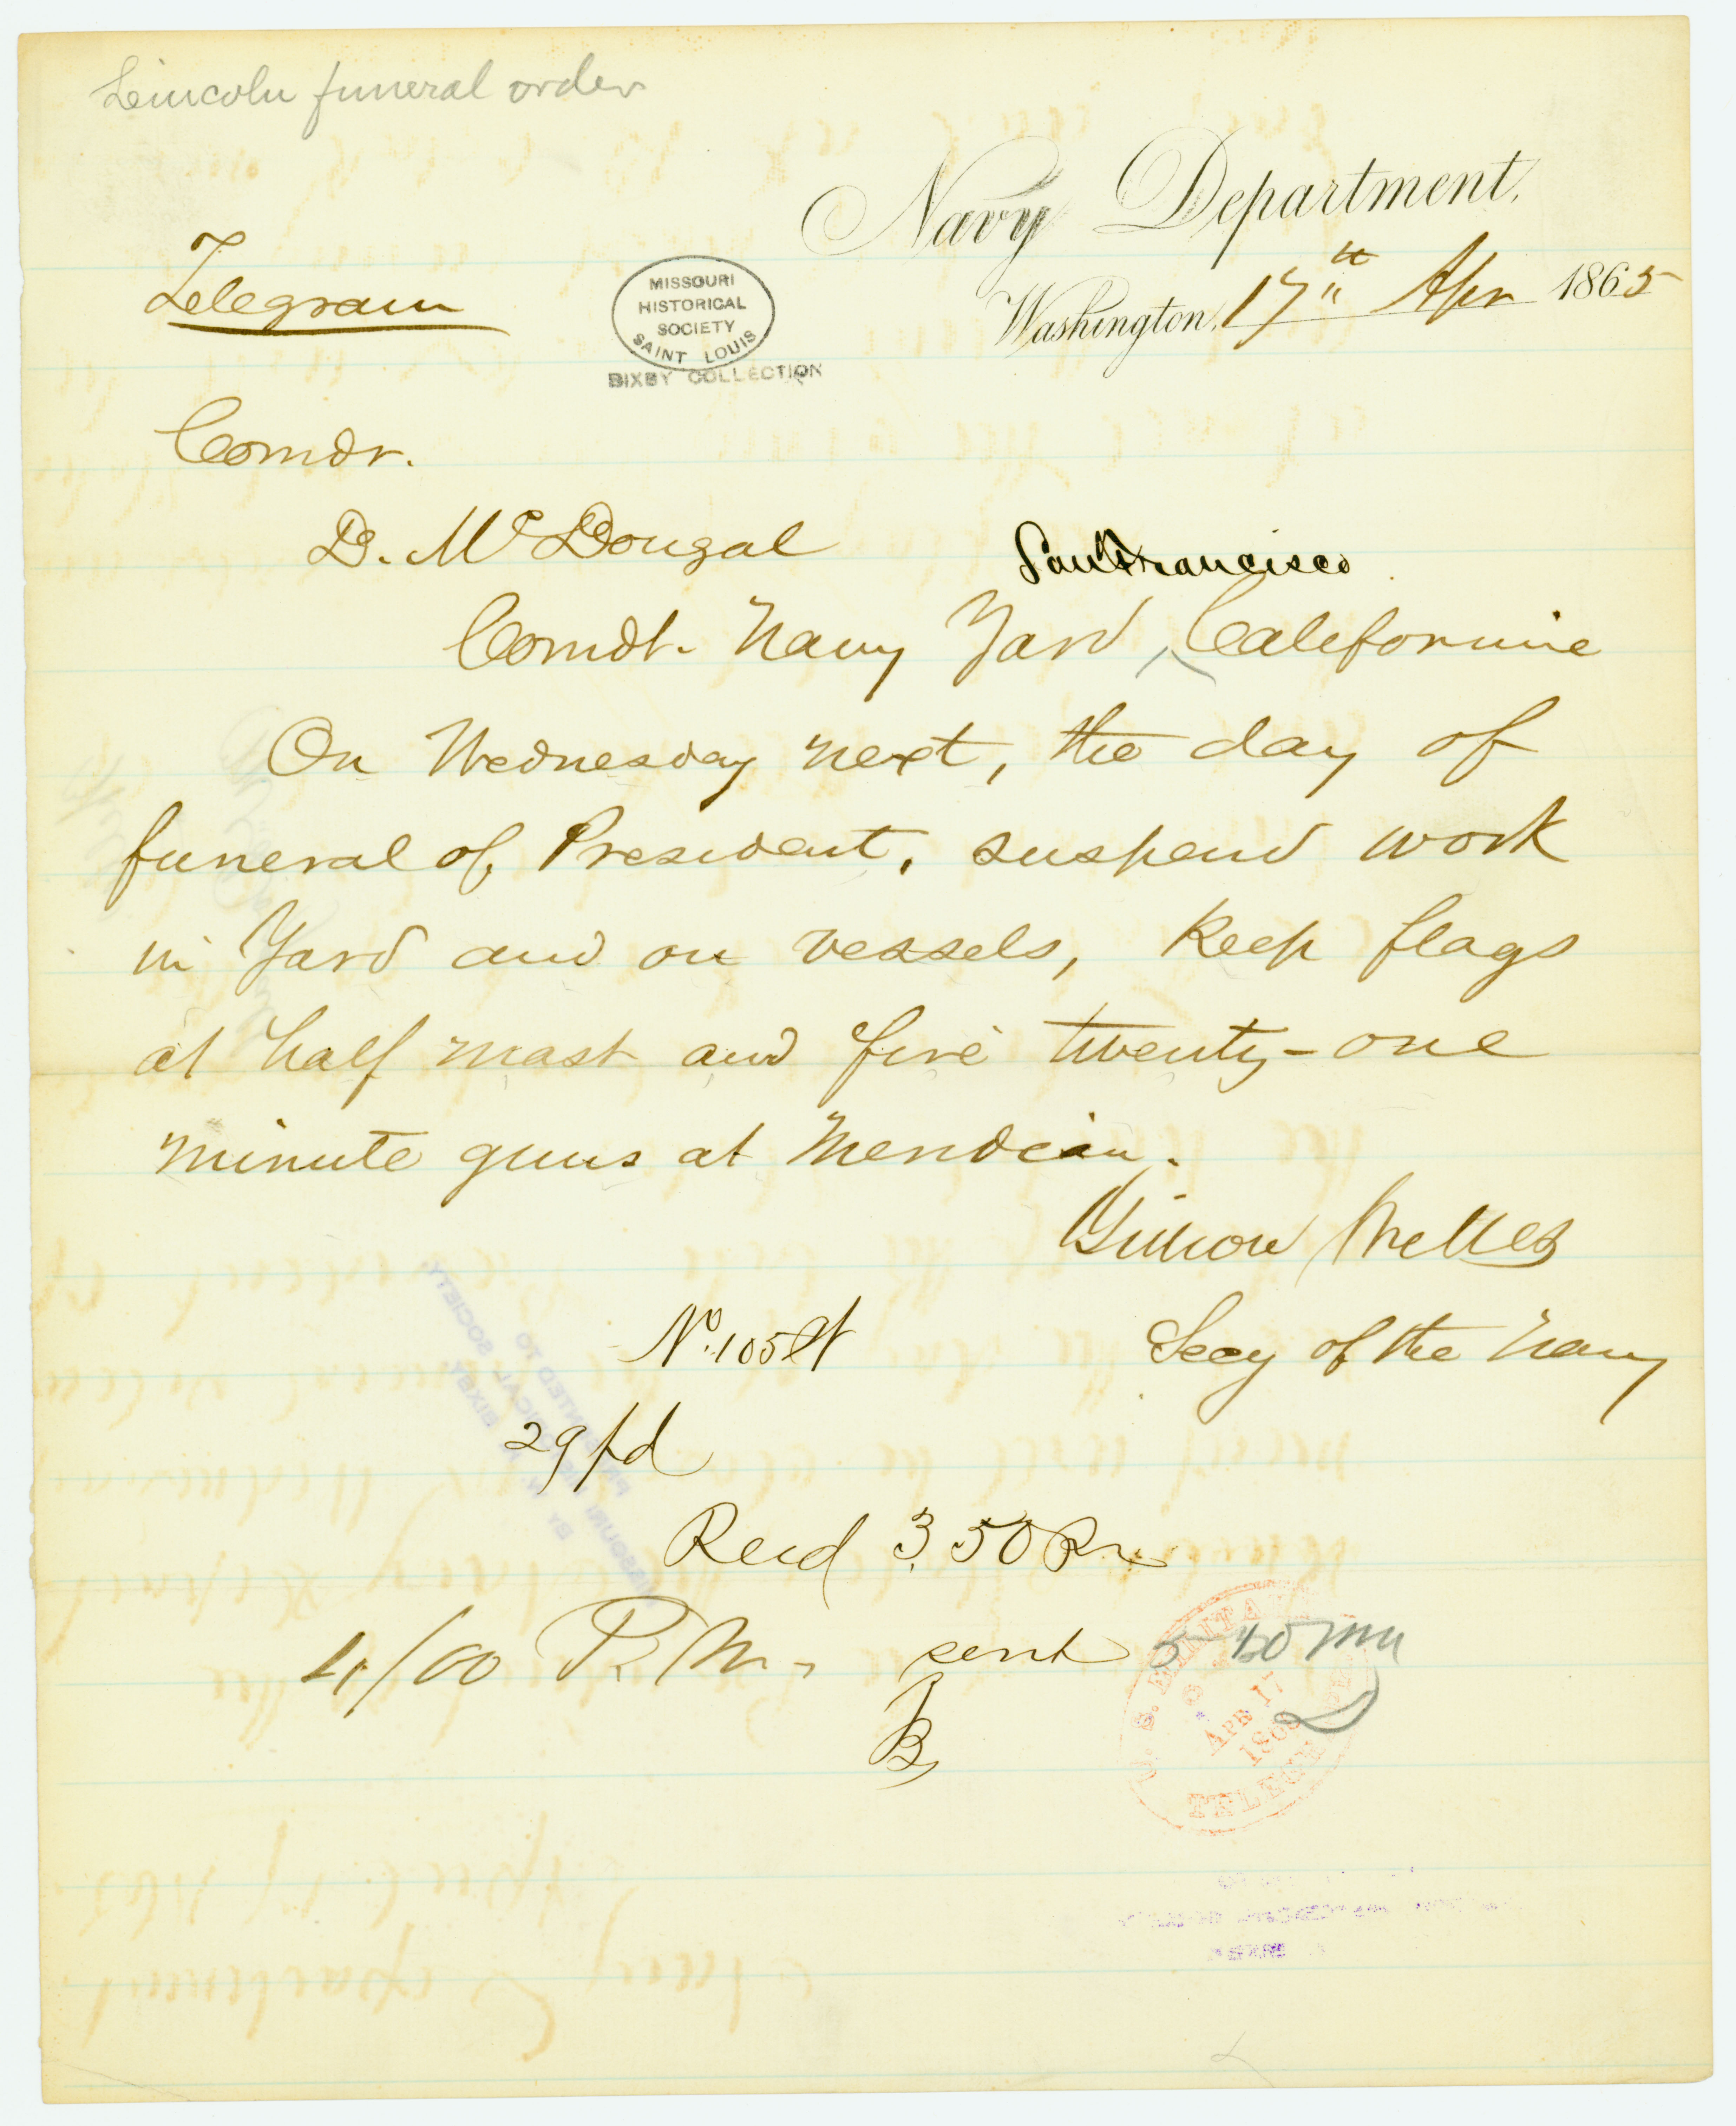 Contemporary copy of telegram of Gideon Welles, Secy. of the Navy, Navy Department, Washington, to Comdr. D. W. Dougal, Comdt. Navy Yard, San Francisco, California, April 17, 1865